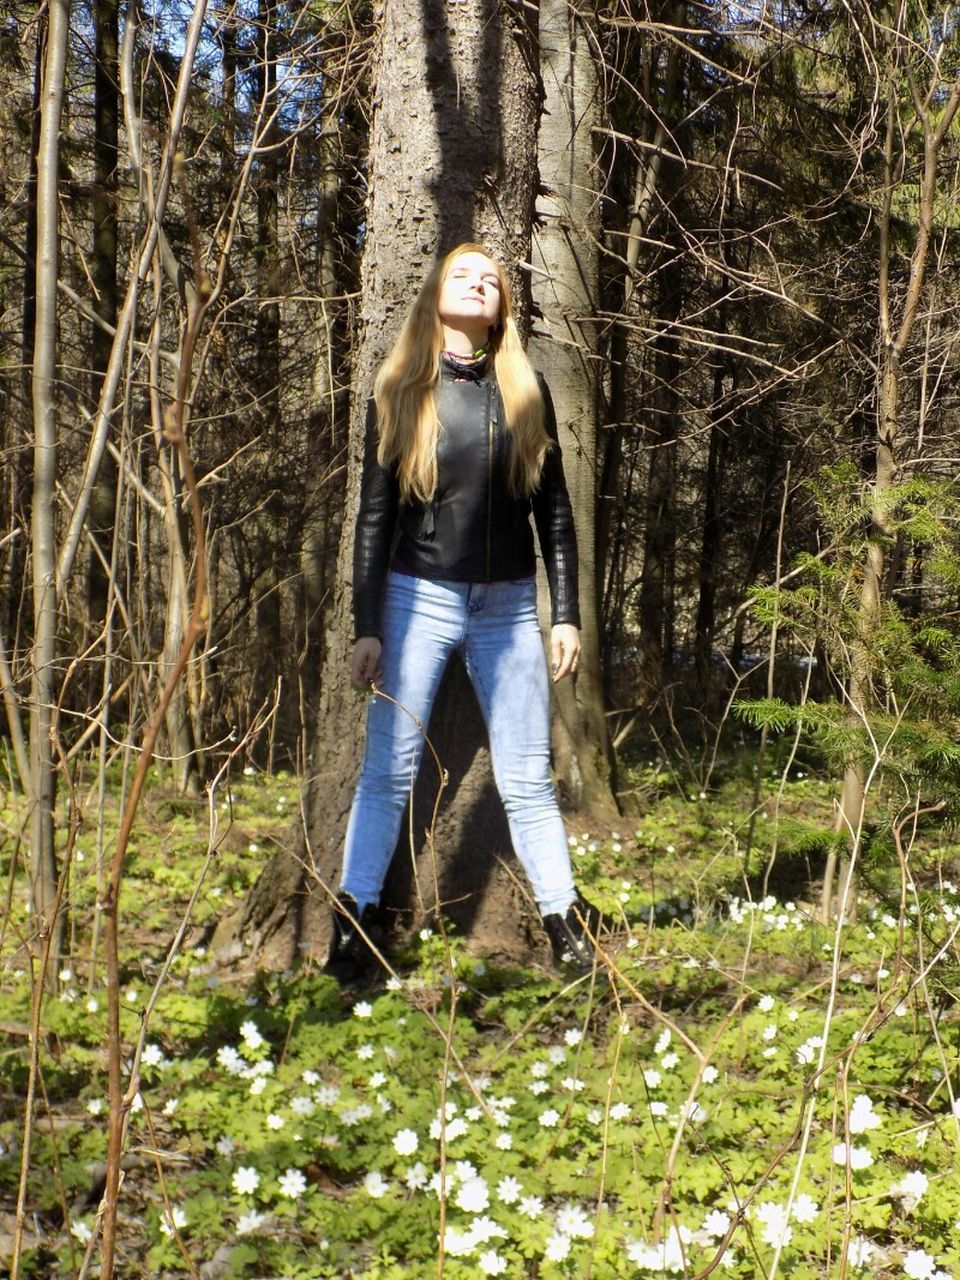 looking at camera, one person, forest, front view, portrait, tree, casual clothing, full length, outdoors, bare tree, young adult, tree trunk, day, beautiful woman, young women, nature, one young woman only, one woman only, grass, adults only, adult, people